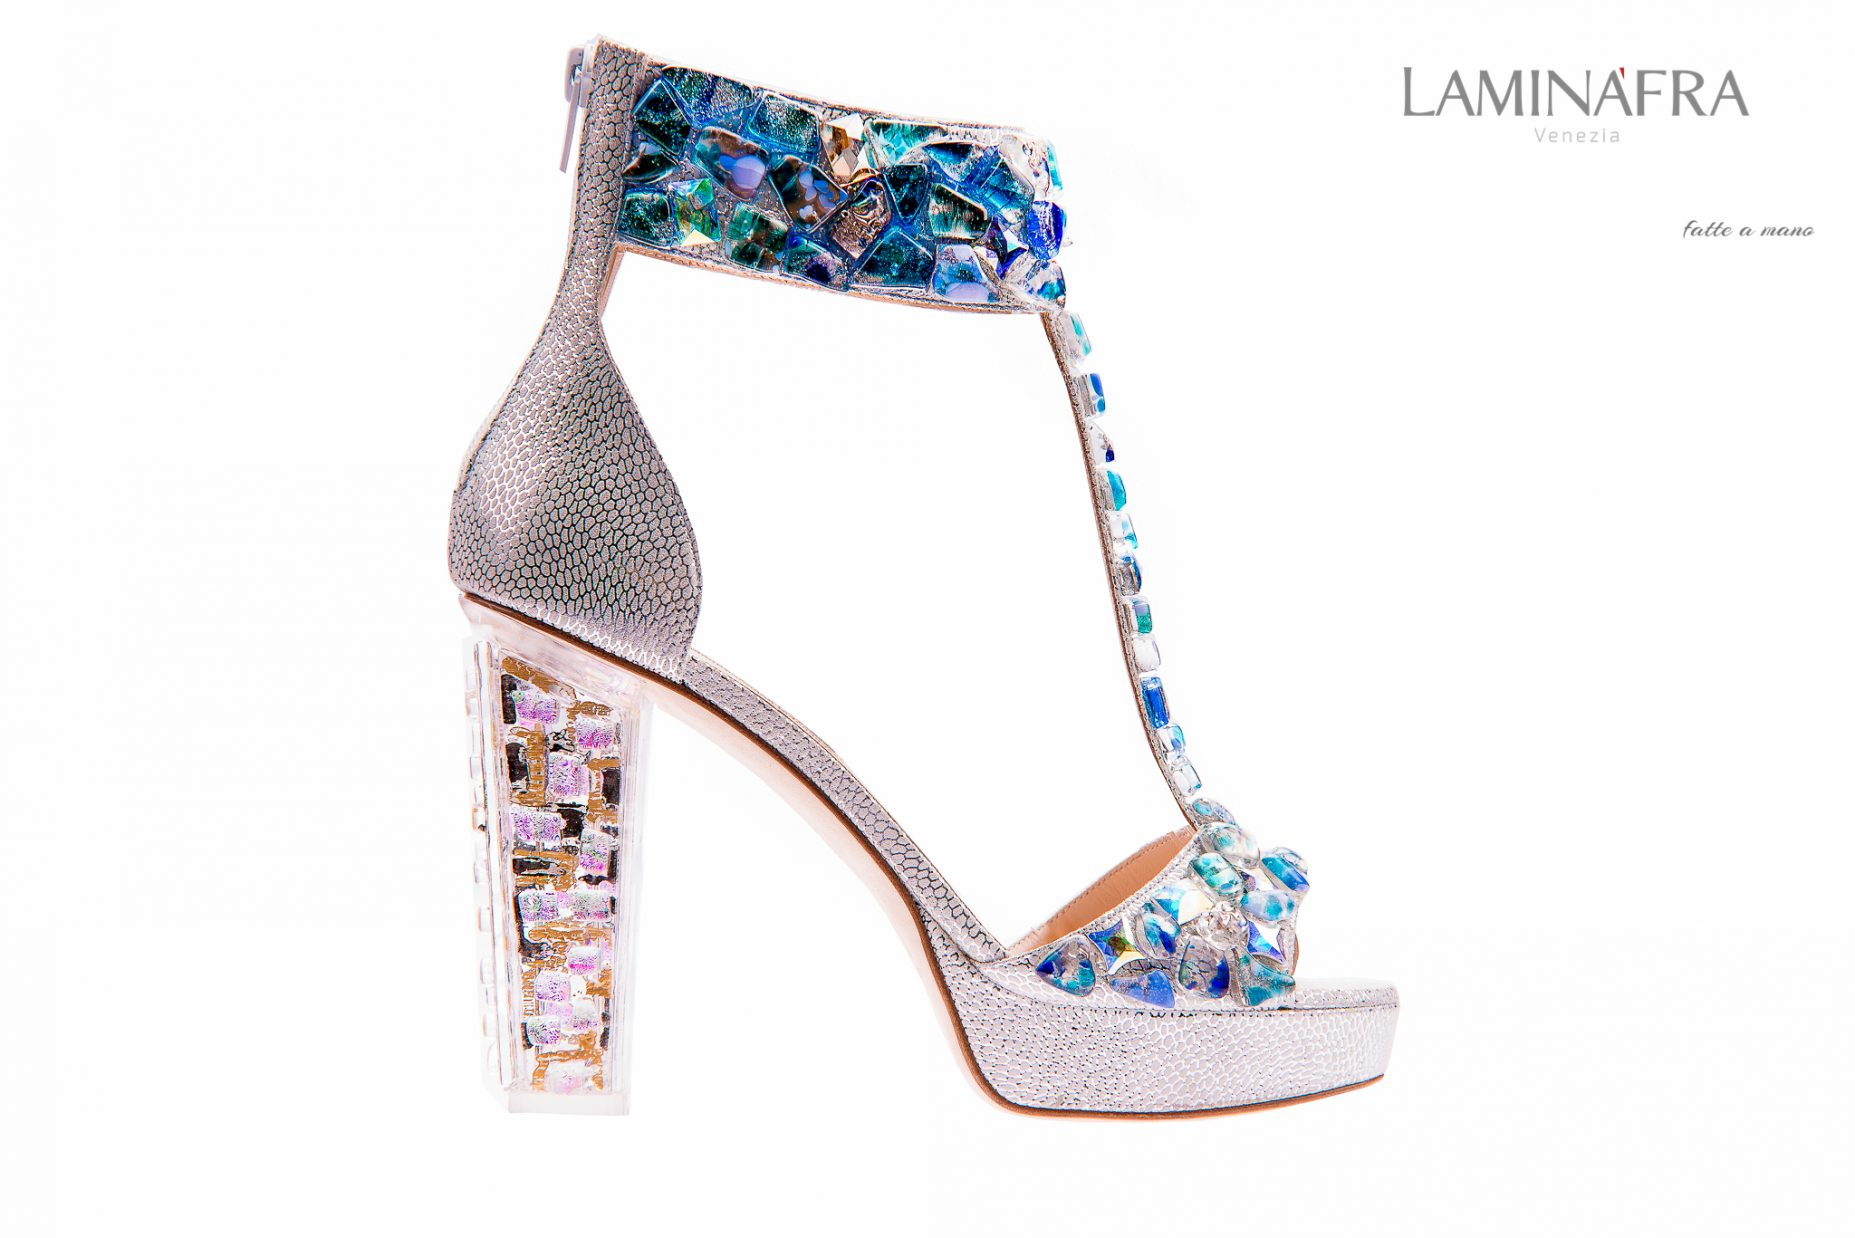 Laminafra Luxury Shoes - Still life e fashion catalogue for www.laminafra.it